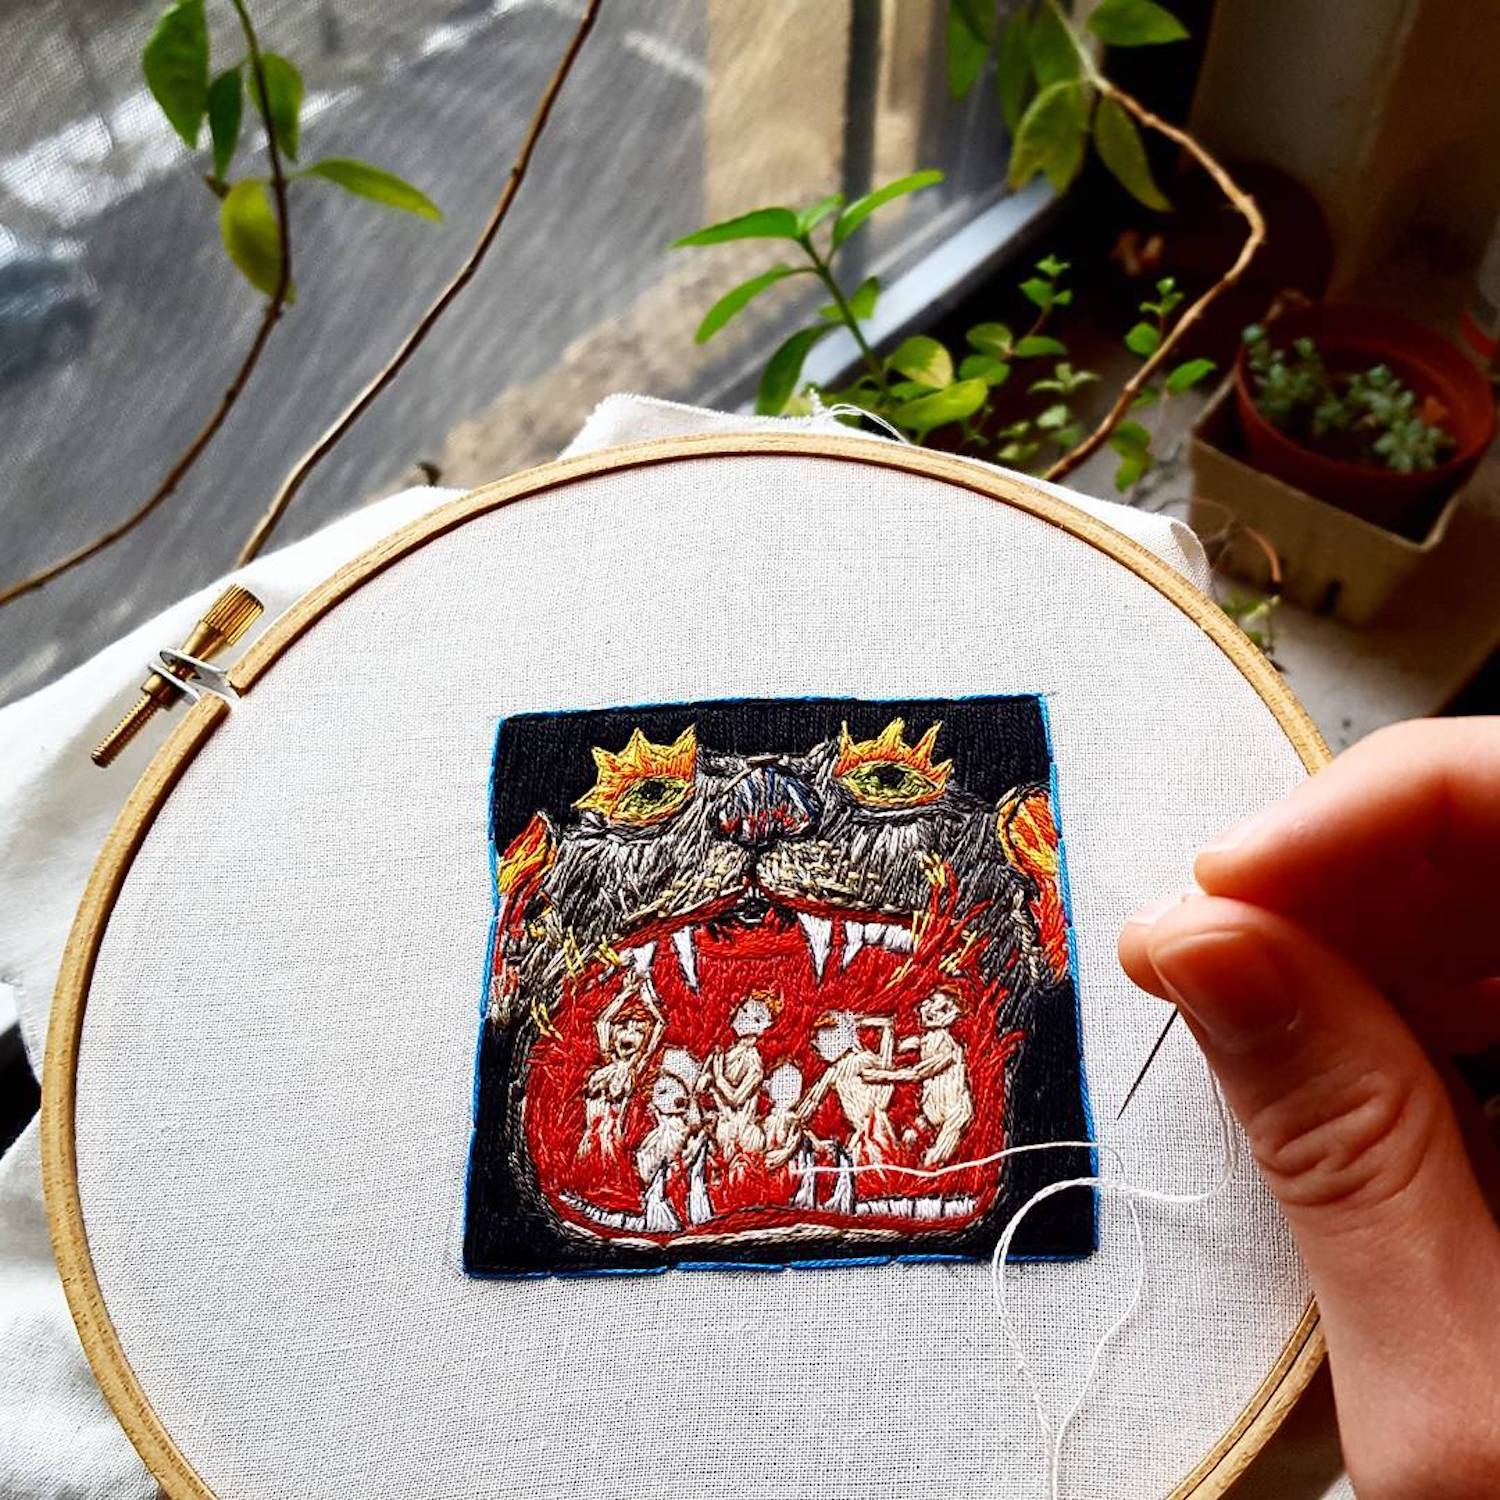 Embroidery by Molly Stern